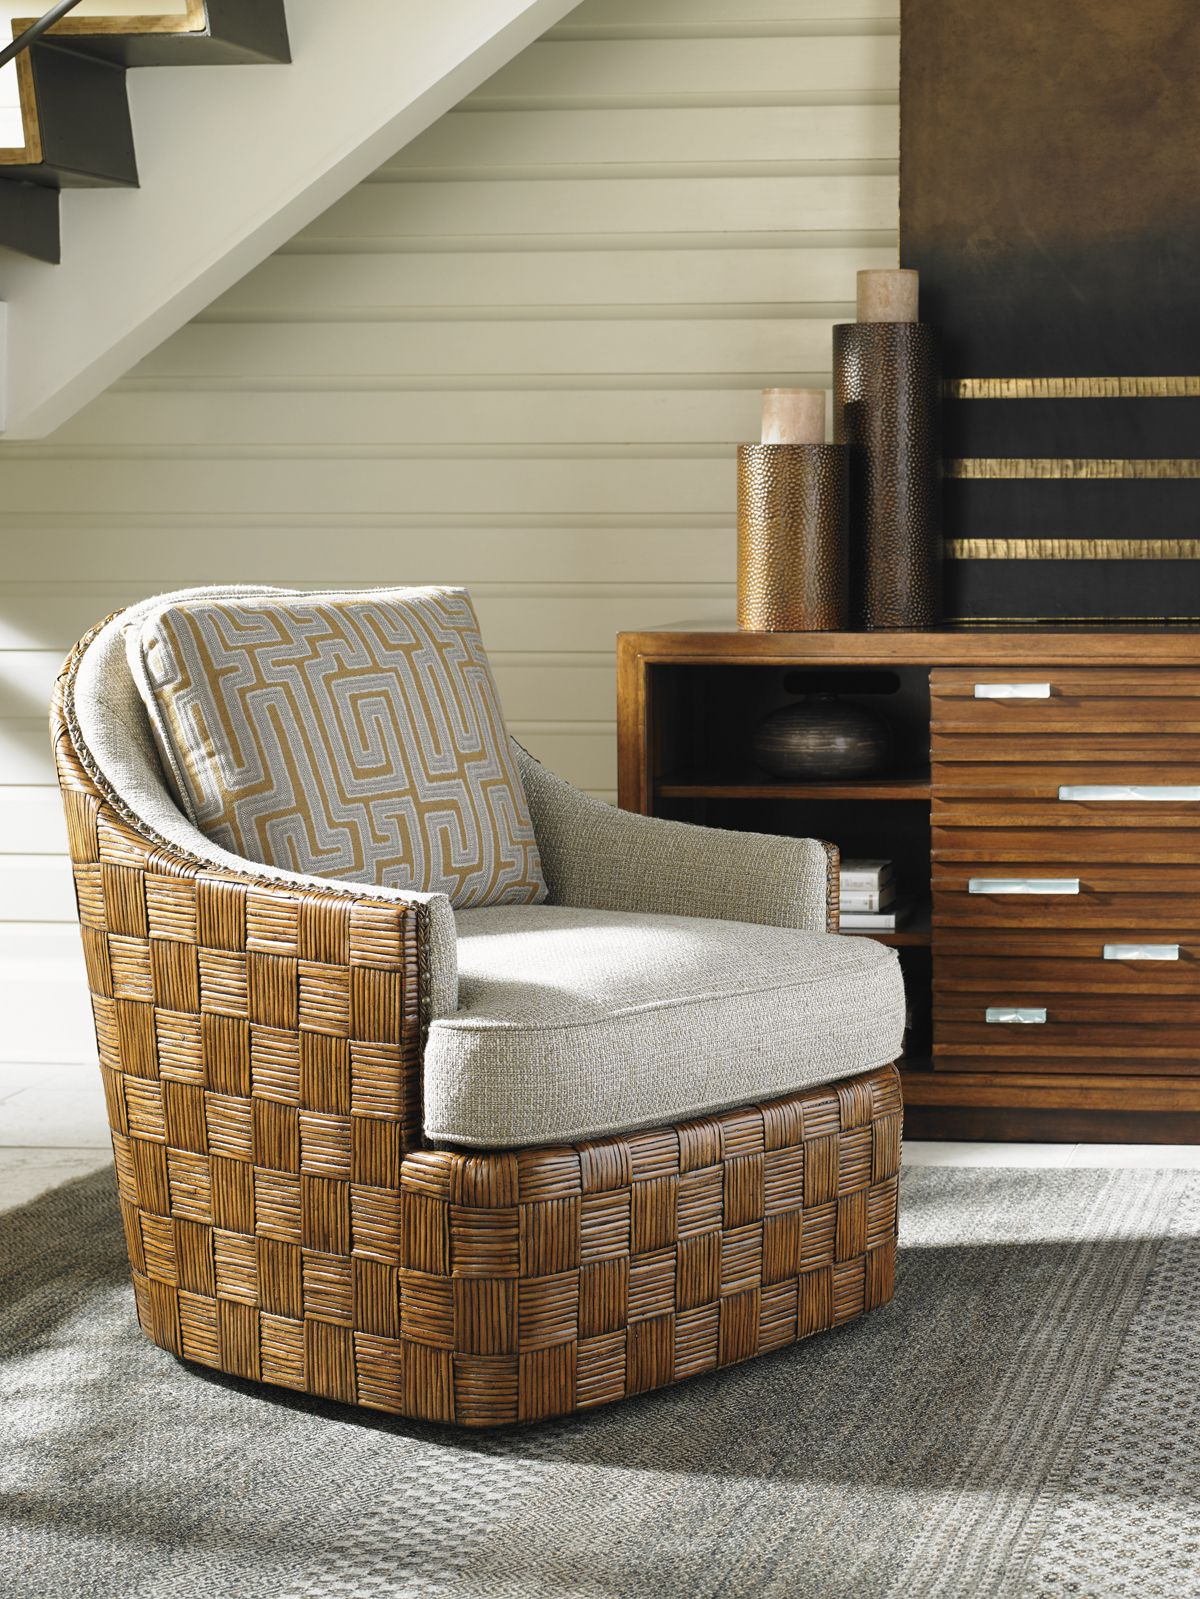 Tommy Bahama Swivel Chair With Woven Rattan Parquet Design | Lexington Home  Brands Furniture